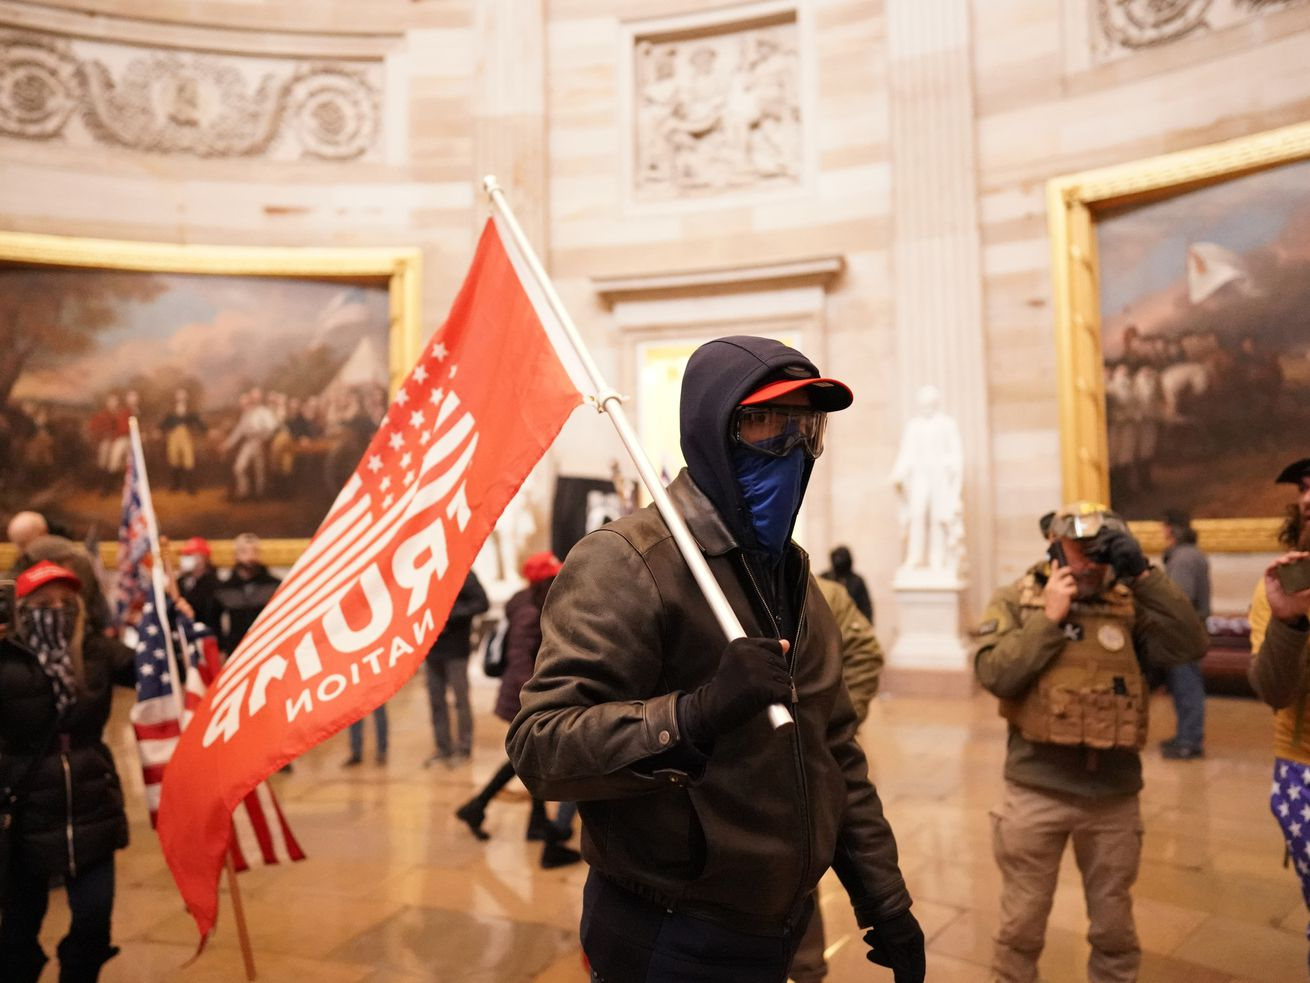 Protesters in a chamber of the Capitol in Washington, D.C. One holds a Trump flag in the center of the image.